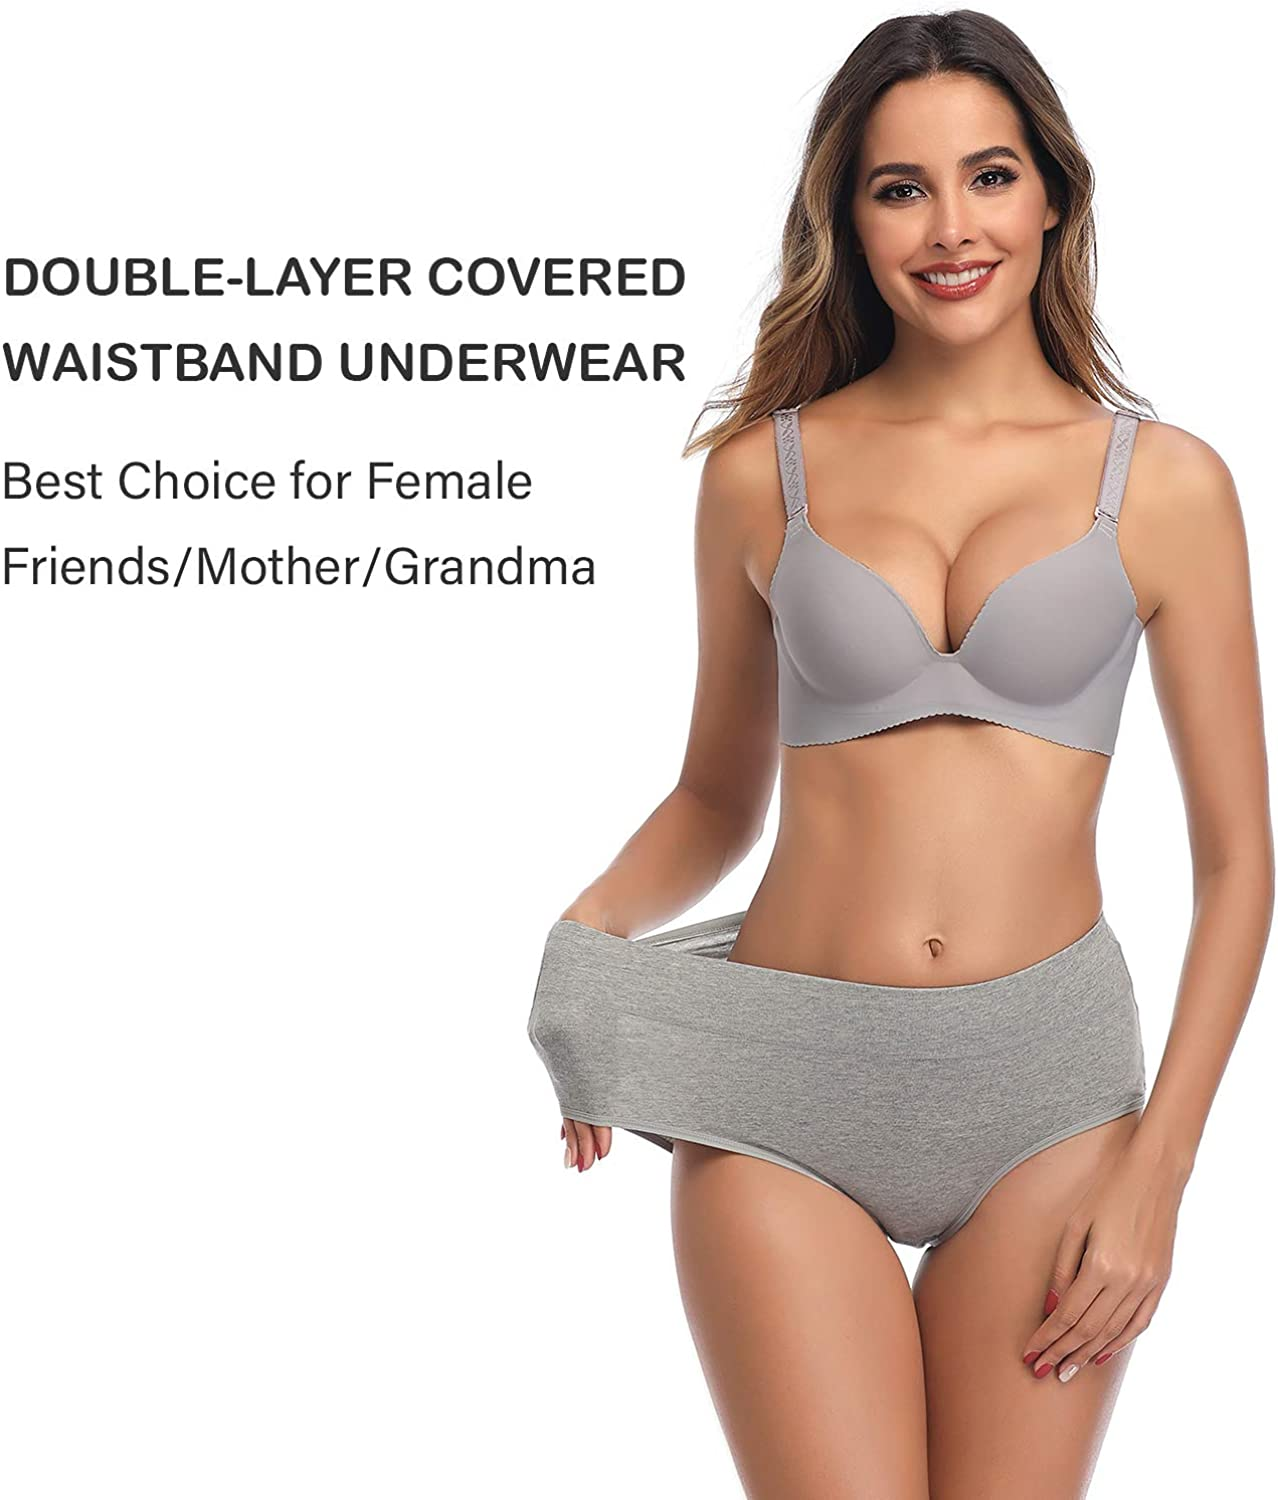 Womens Underwear, No Muffin Top Full Coverage Cotton Underwear Briefs Soft Stretch Breathable Ladies Panties for Women at  Women's Clothing store